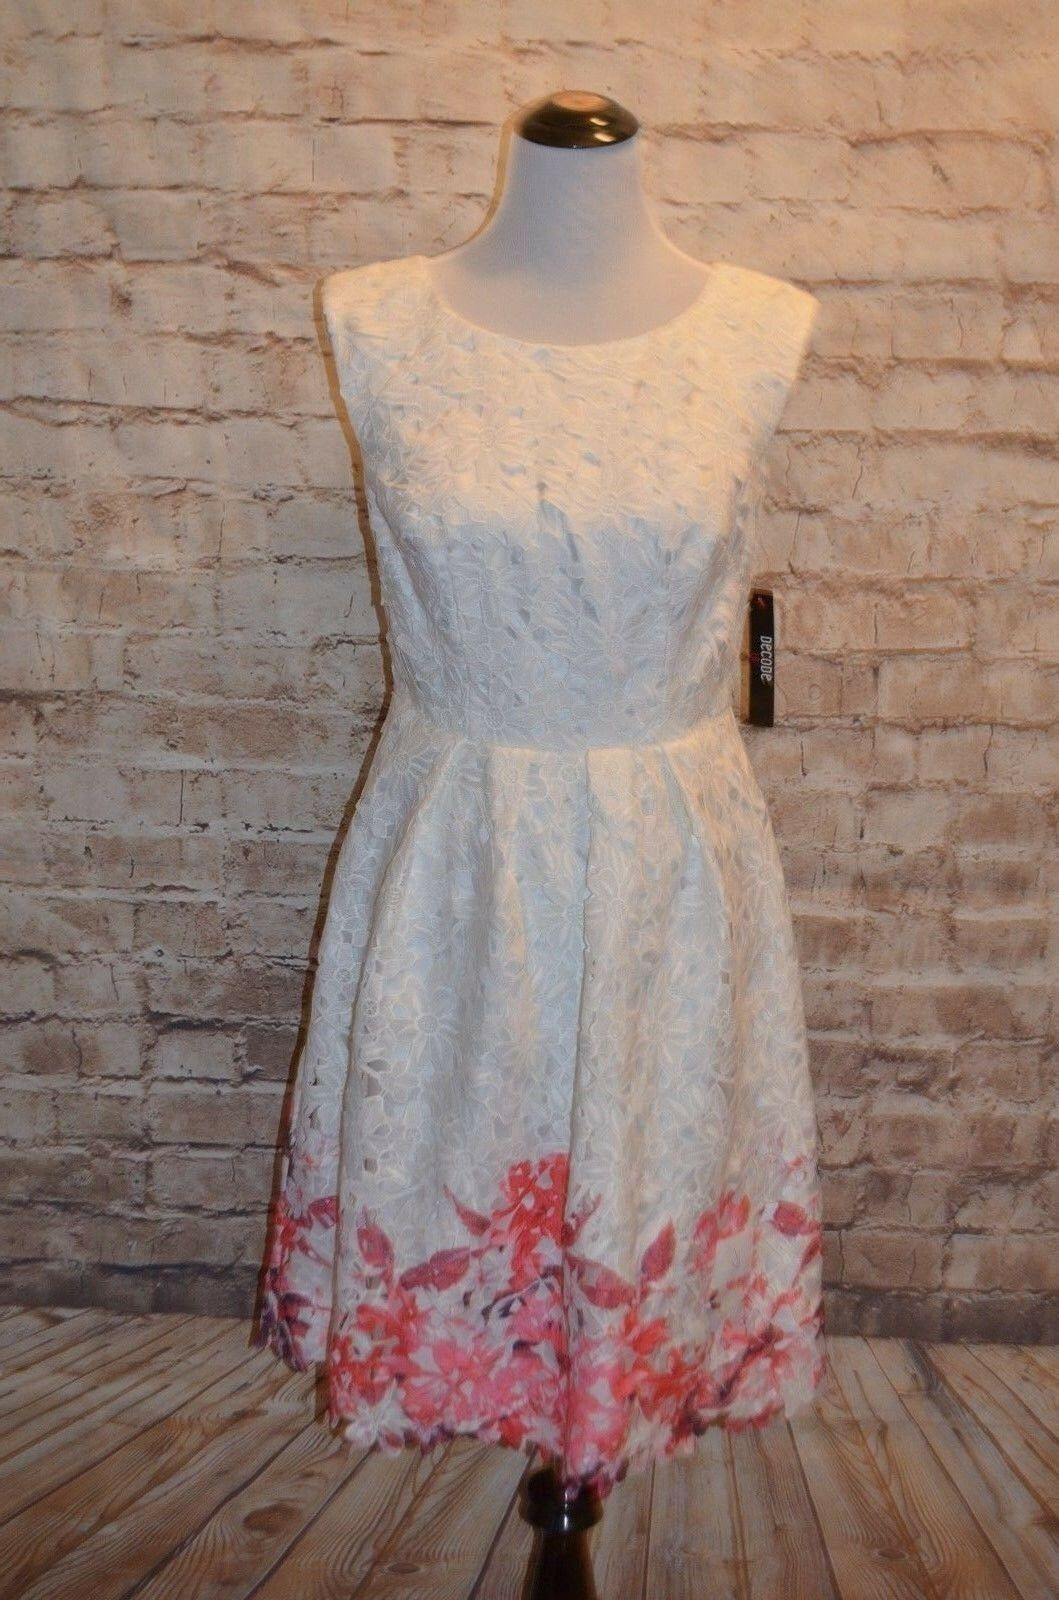 Modcloth Flirty for Eternity Dress NWT sz 6  Lace  Decode 1.8  150 floral hem